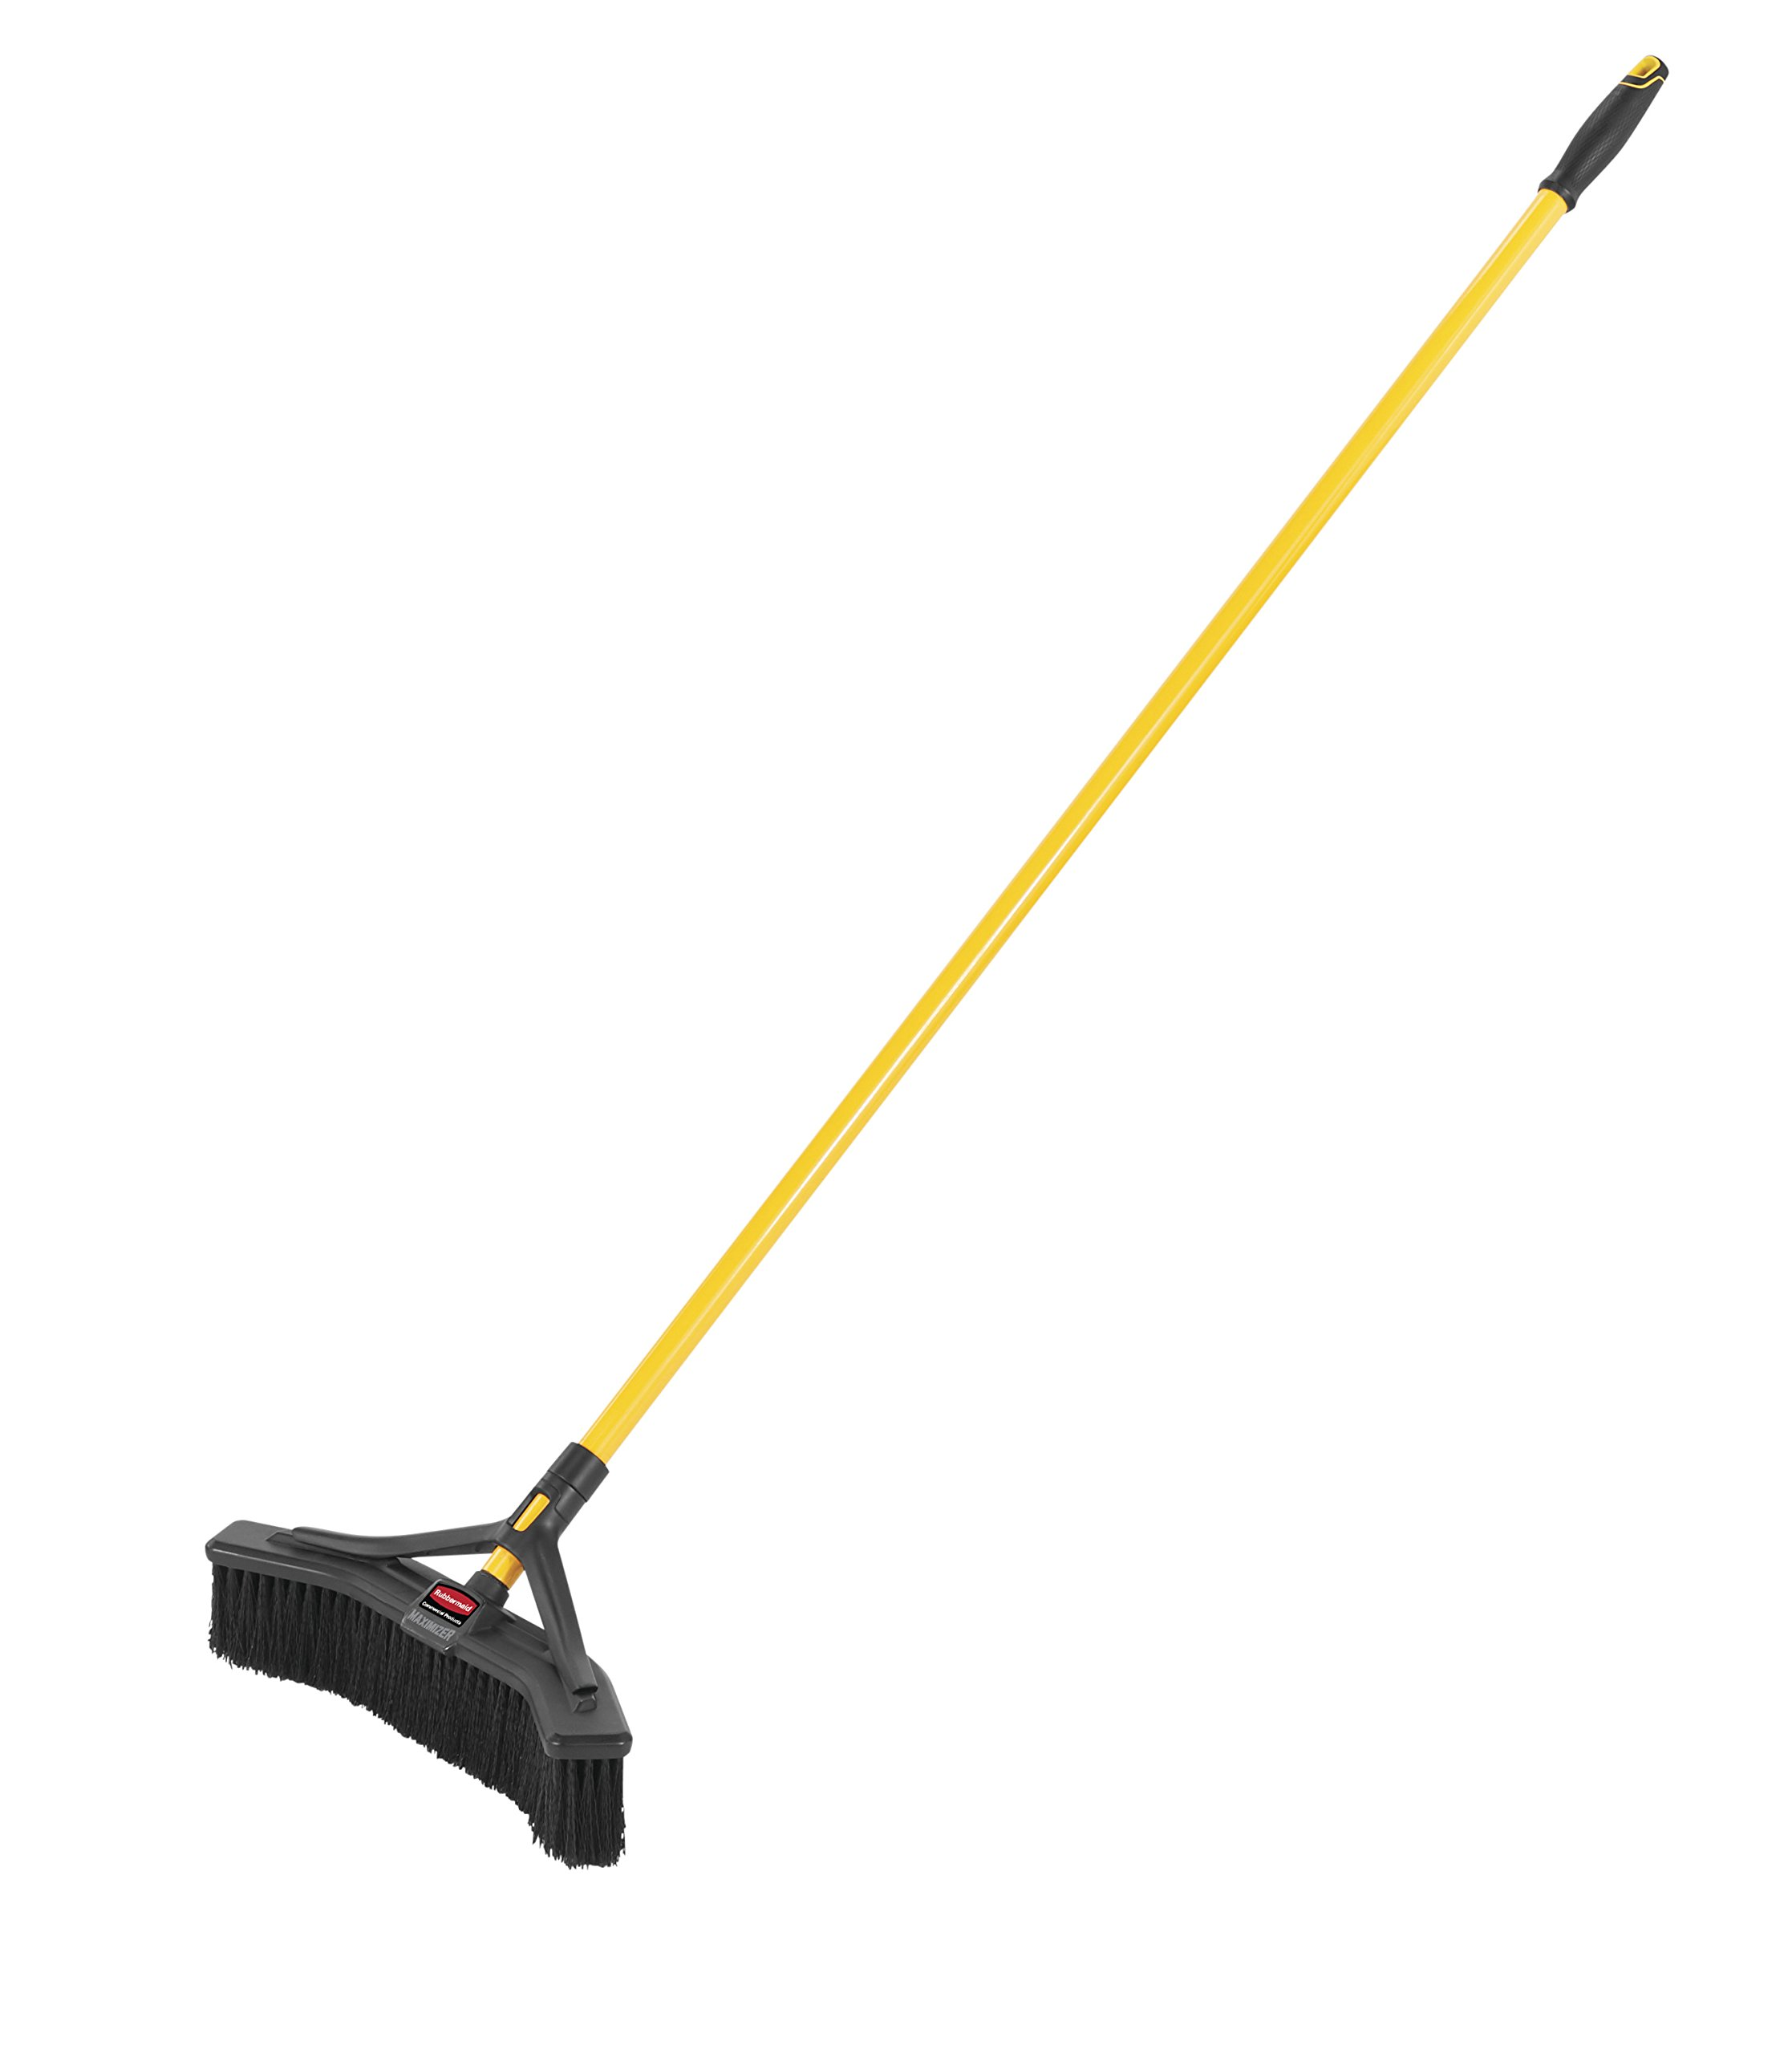 Rubbermaid Commercial Products Maximizer Push-to-Center Broom with Multi-Purpose Bristle, 18'' Wide, Black (2018727)